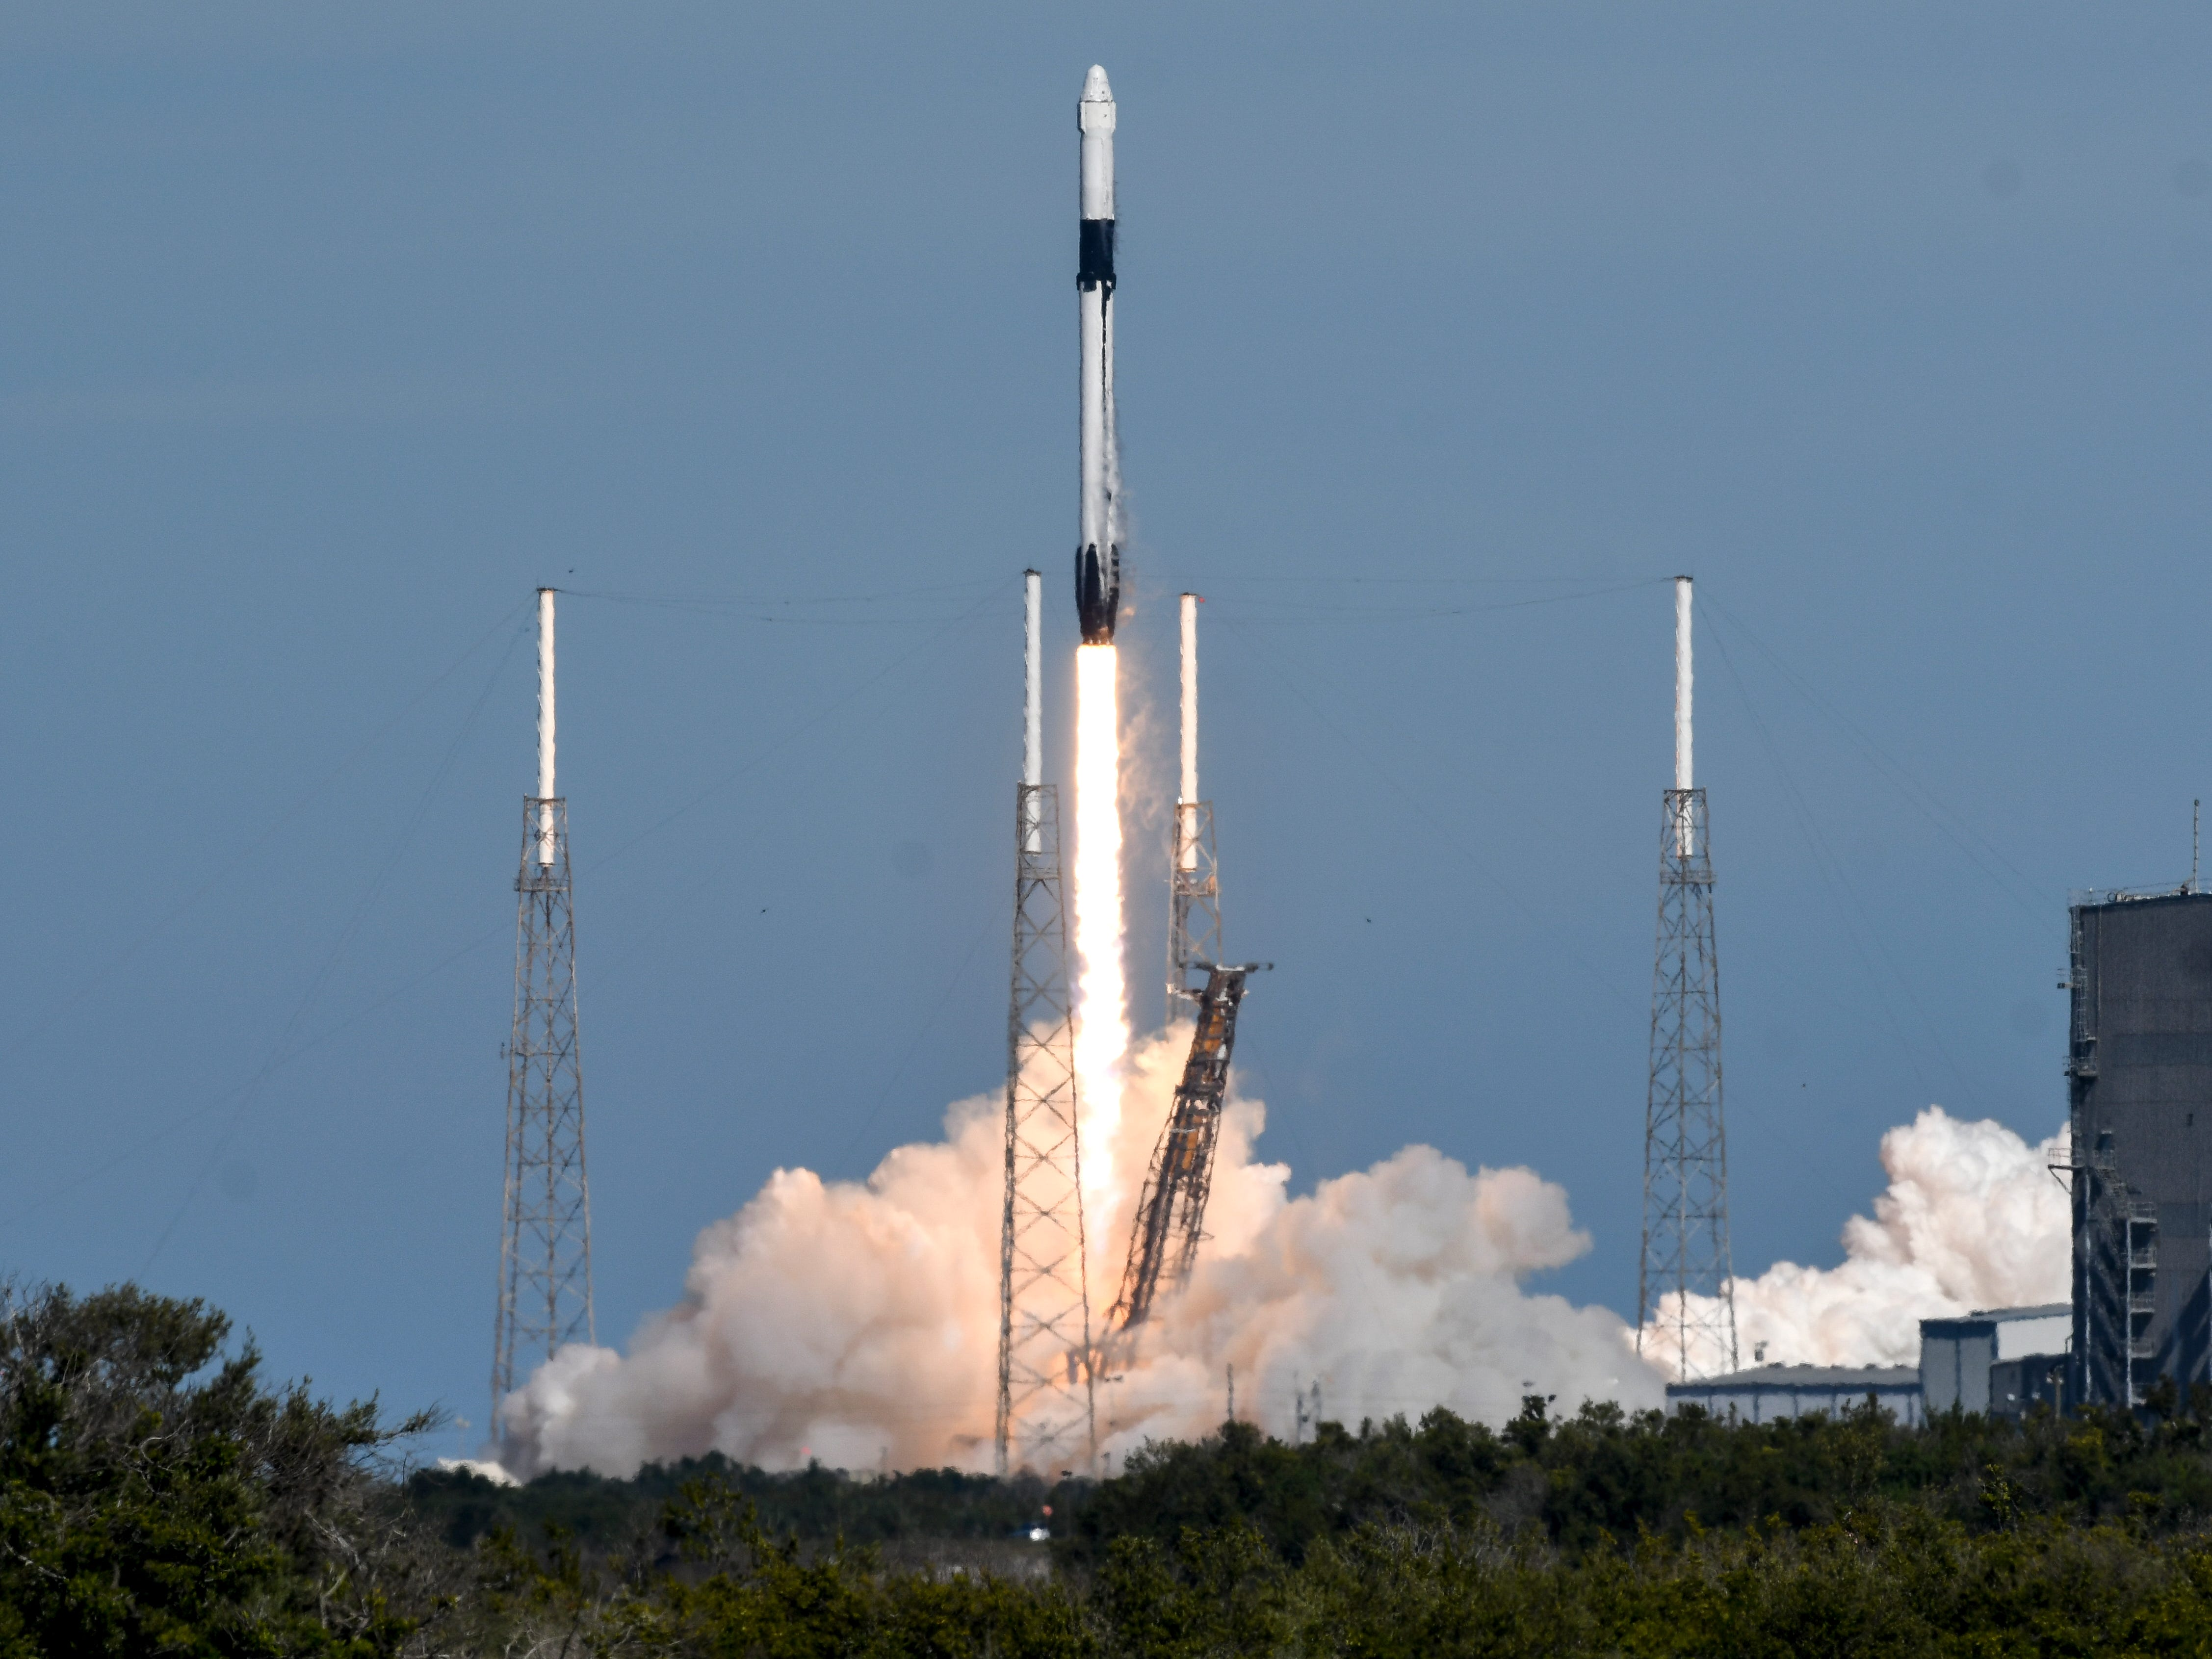 A SpaceX Falcon 9 rocket lifts off from Complex 40 at Cape Canaveral Air Force Station Wednesday, Dec.5, 2018. The rocket is carrying supplies for the International Space Station.